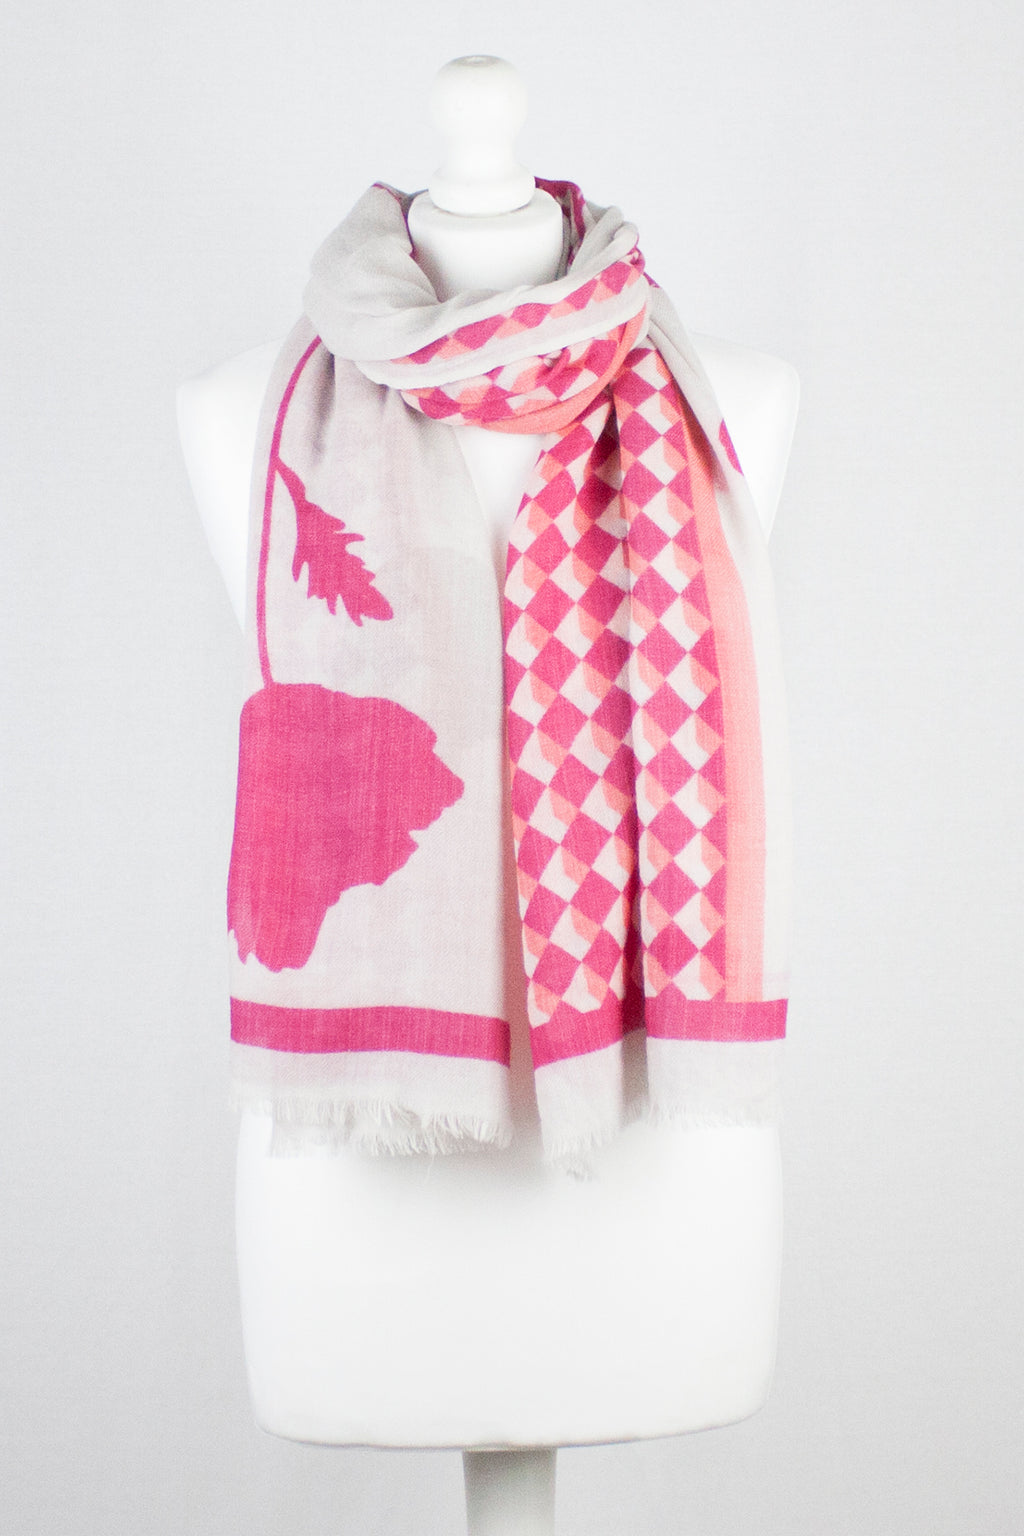 Flower and Diamond Print Merino Wool Scarf - Hot Pink Off White